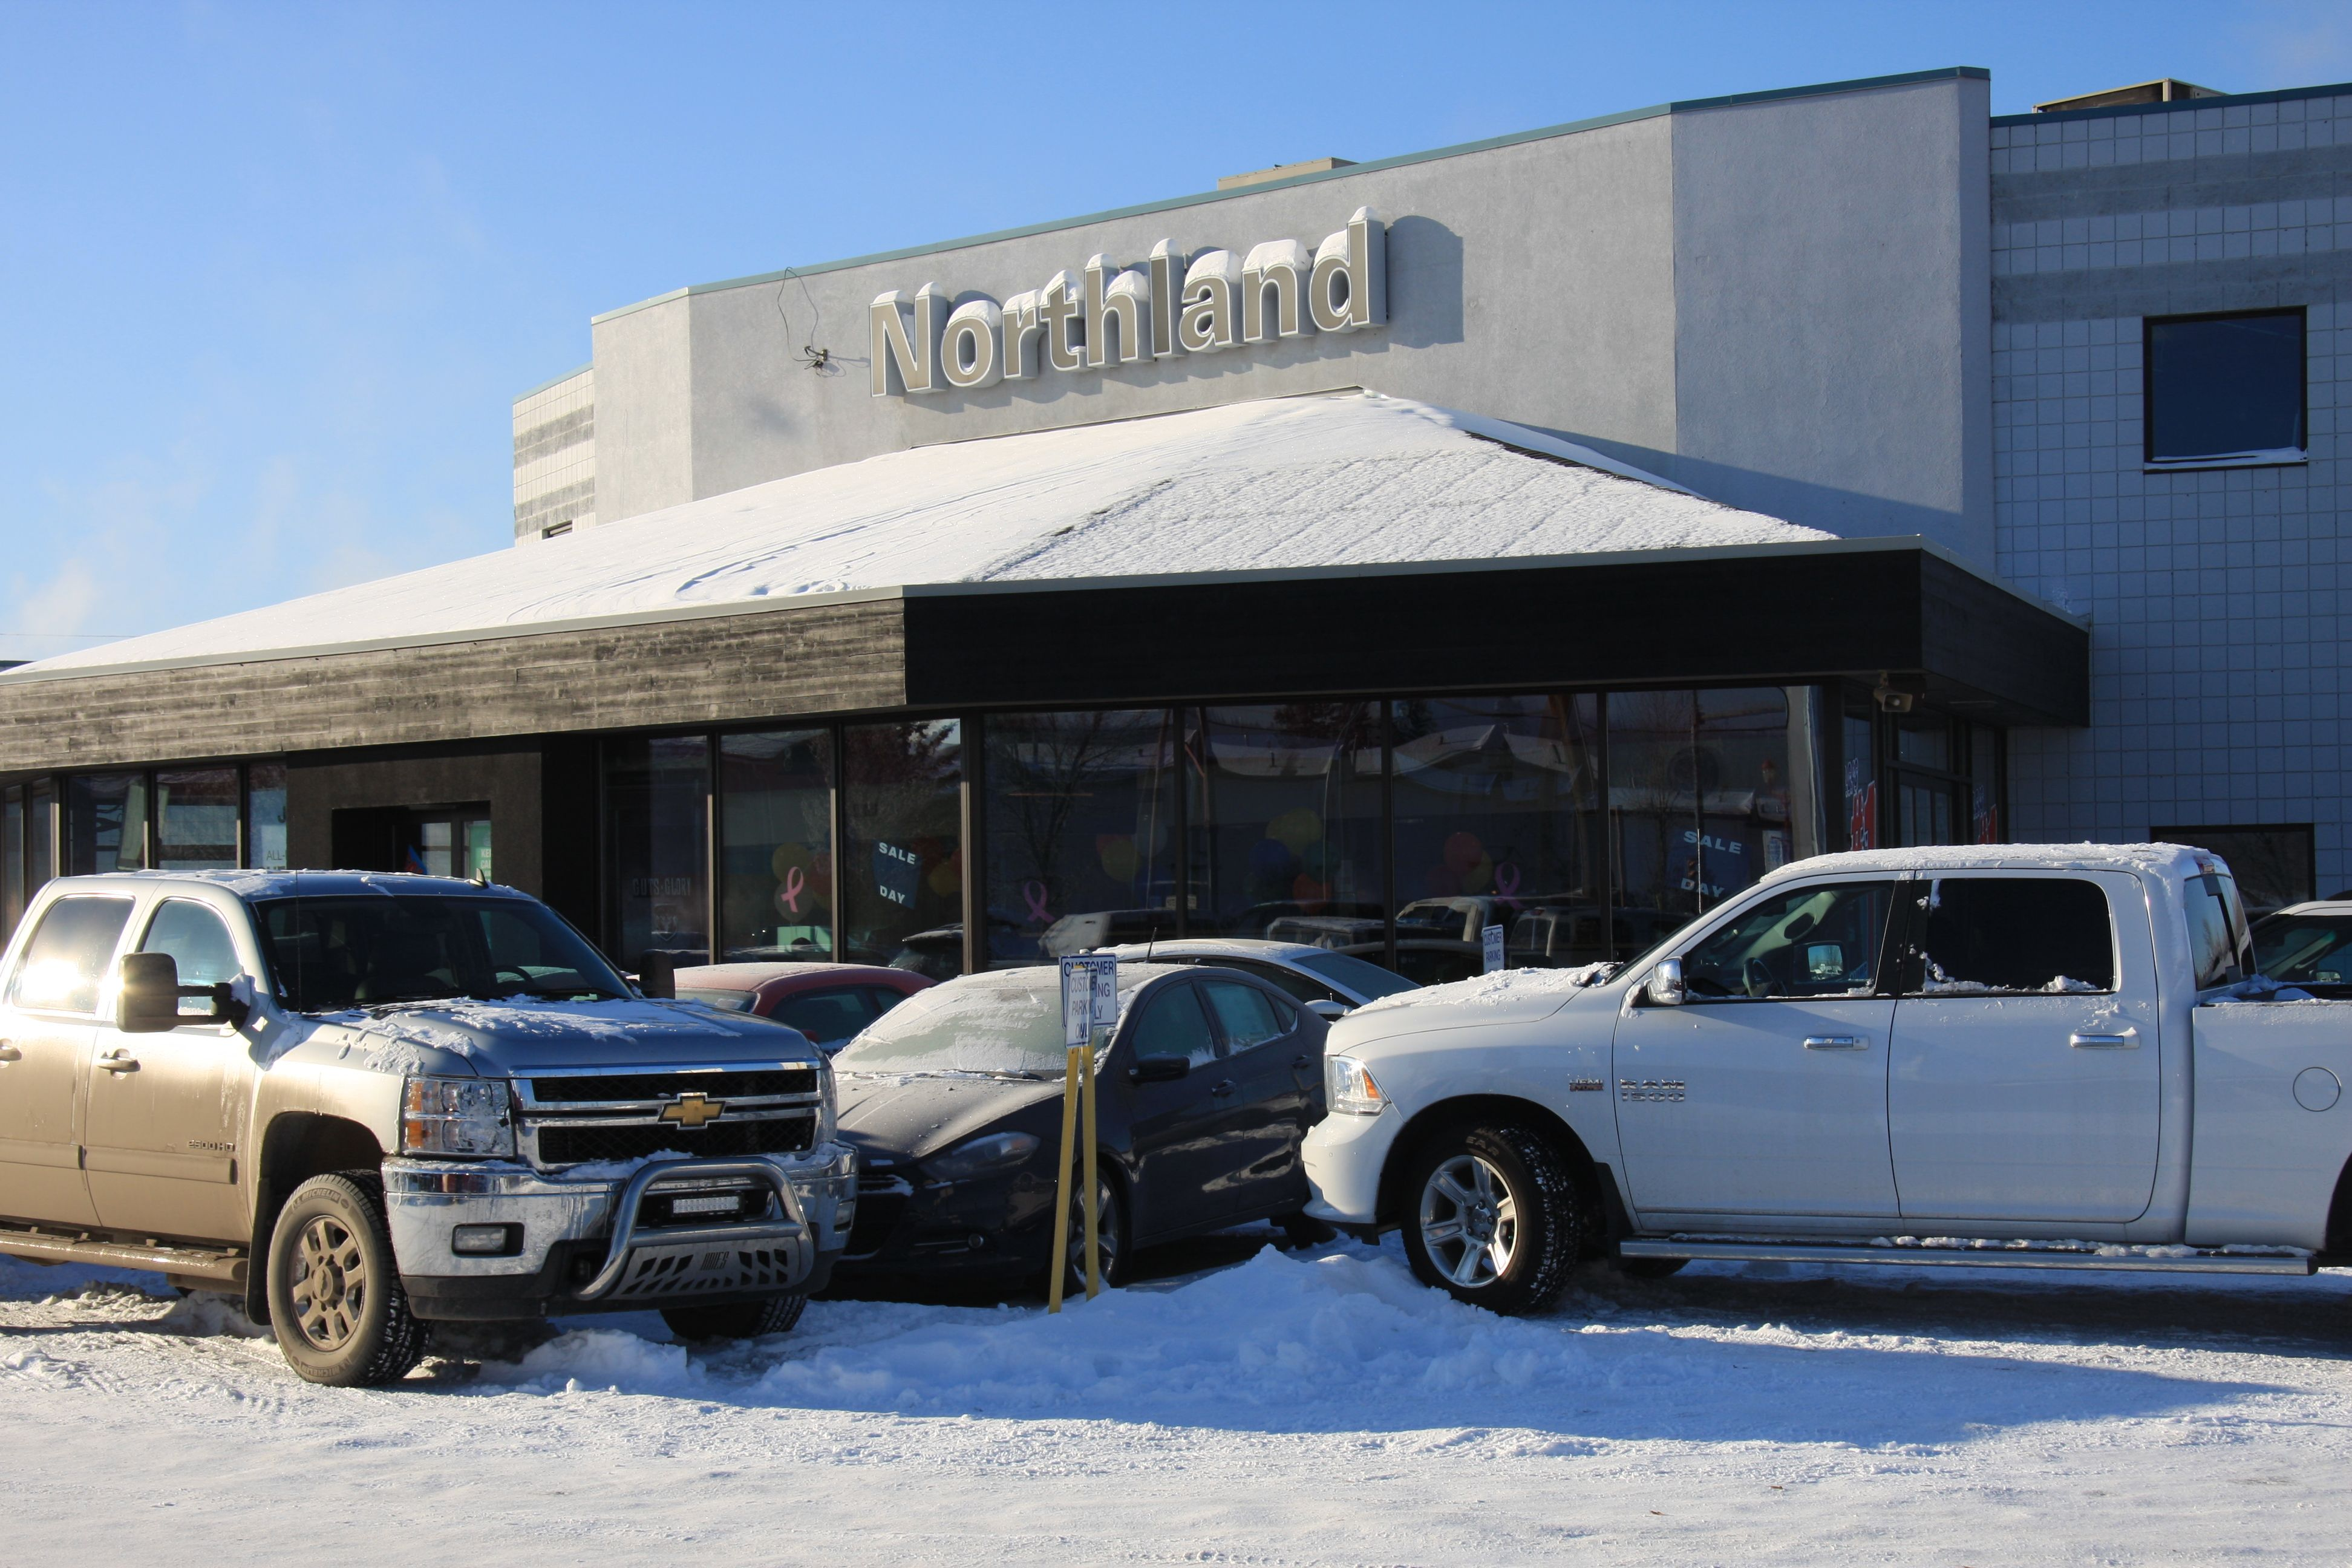 Northland Dodge (Northland Chrysler Jeep Dodge) Located At 1995 20th Ave  Prince George,